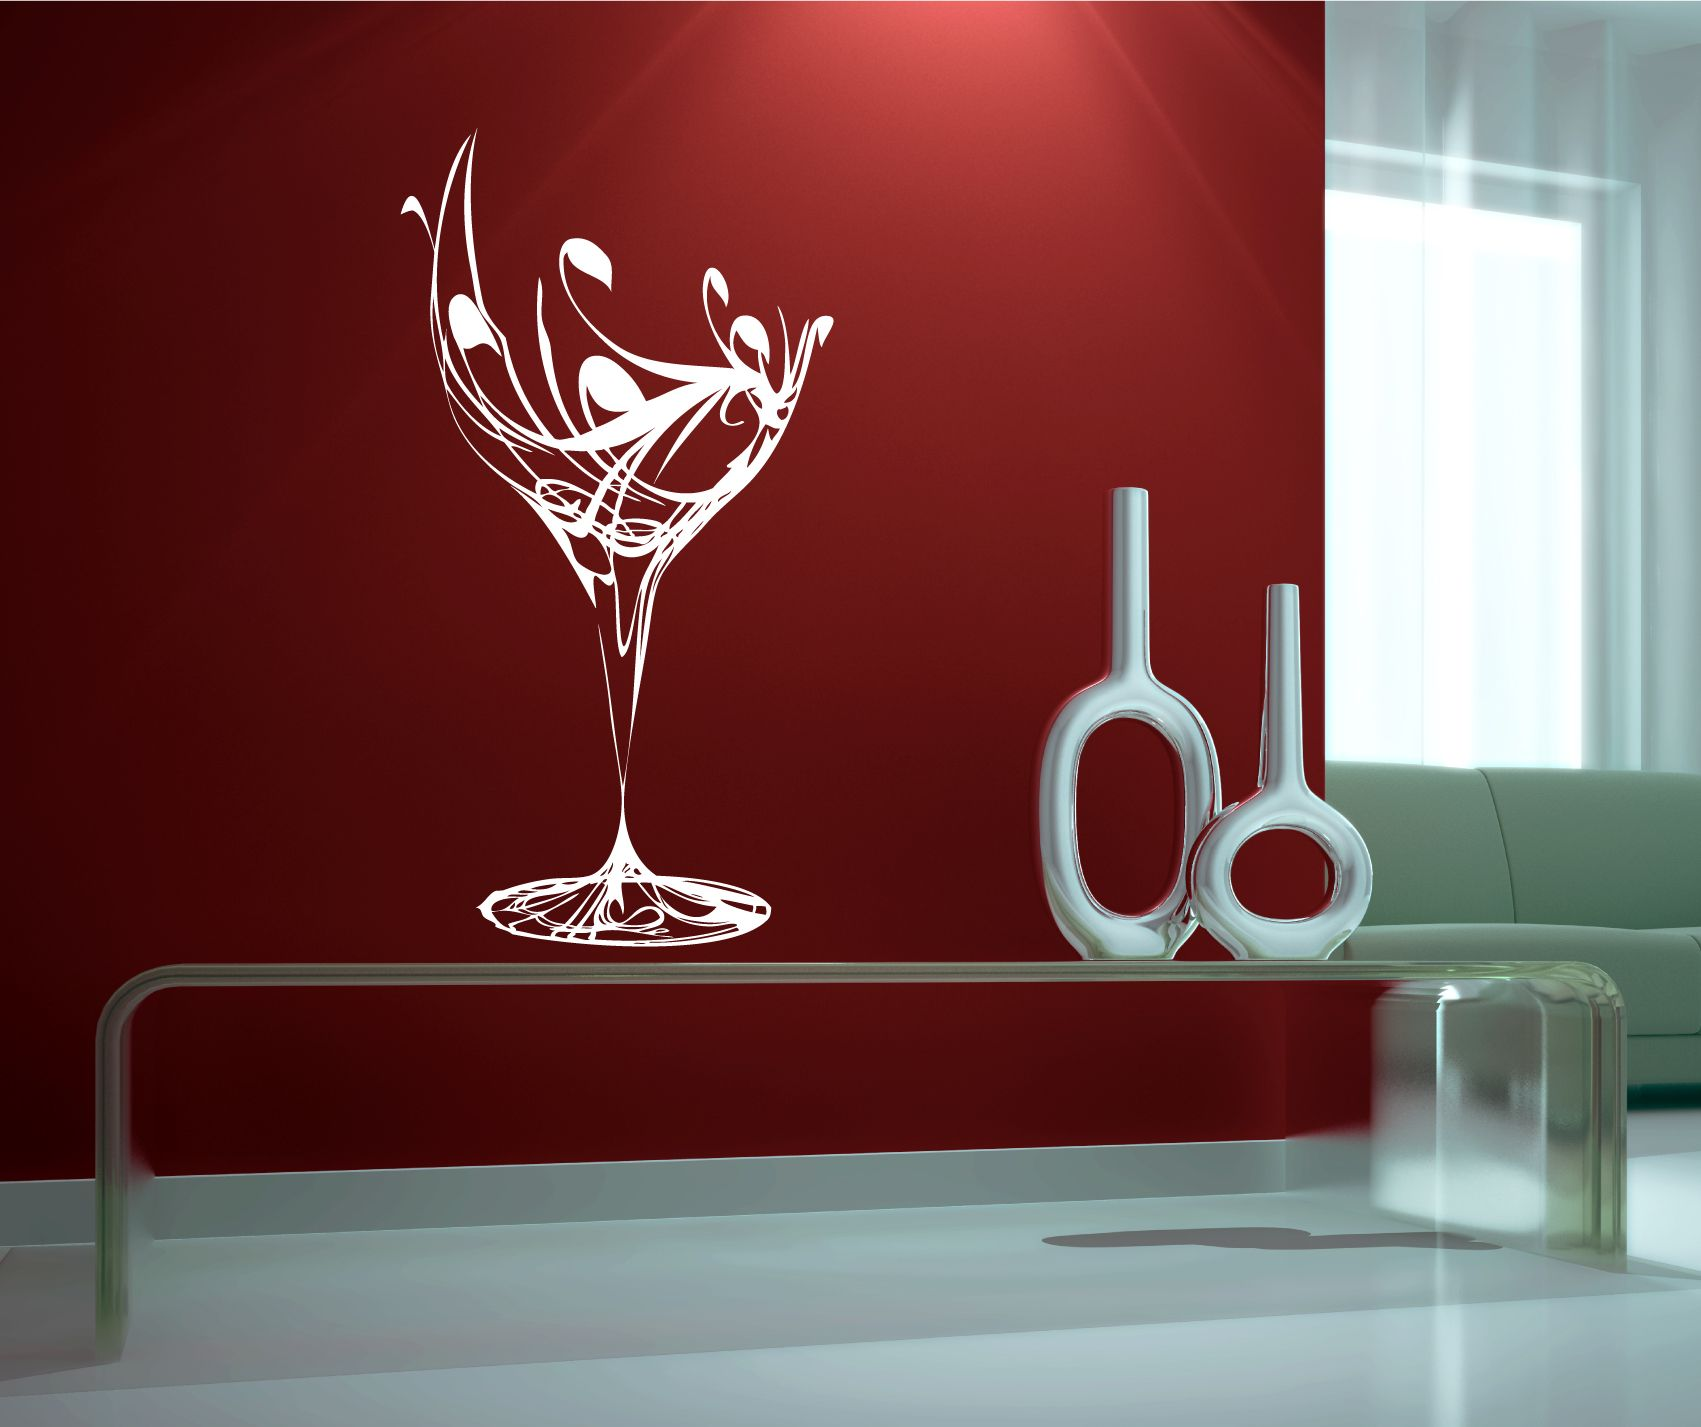 Decorative Wine Glass Vinyl Wall Art Stickers Decal My Dream - Vinyl decals for wine glasses uk